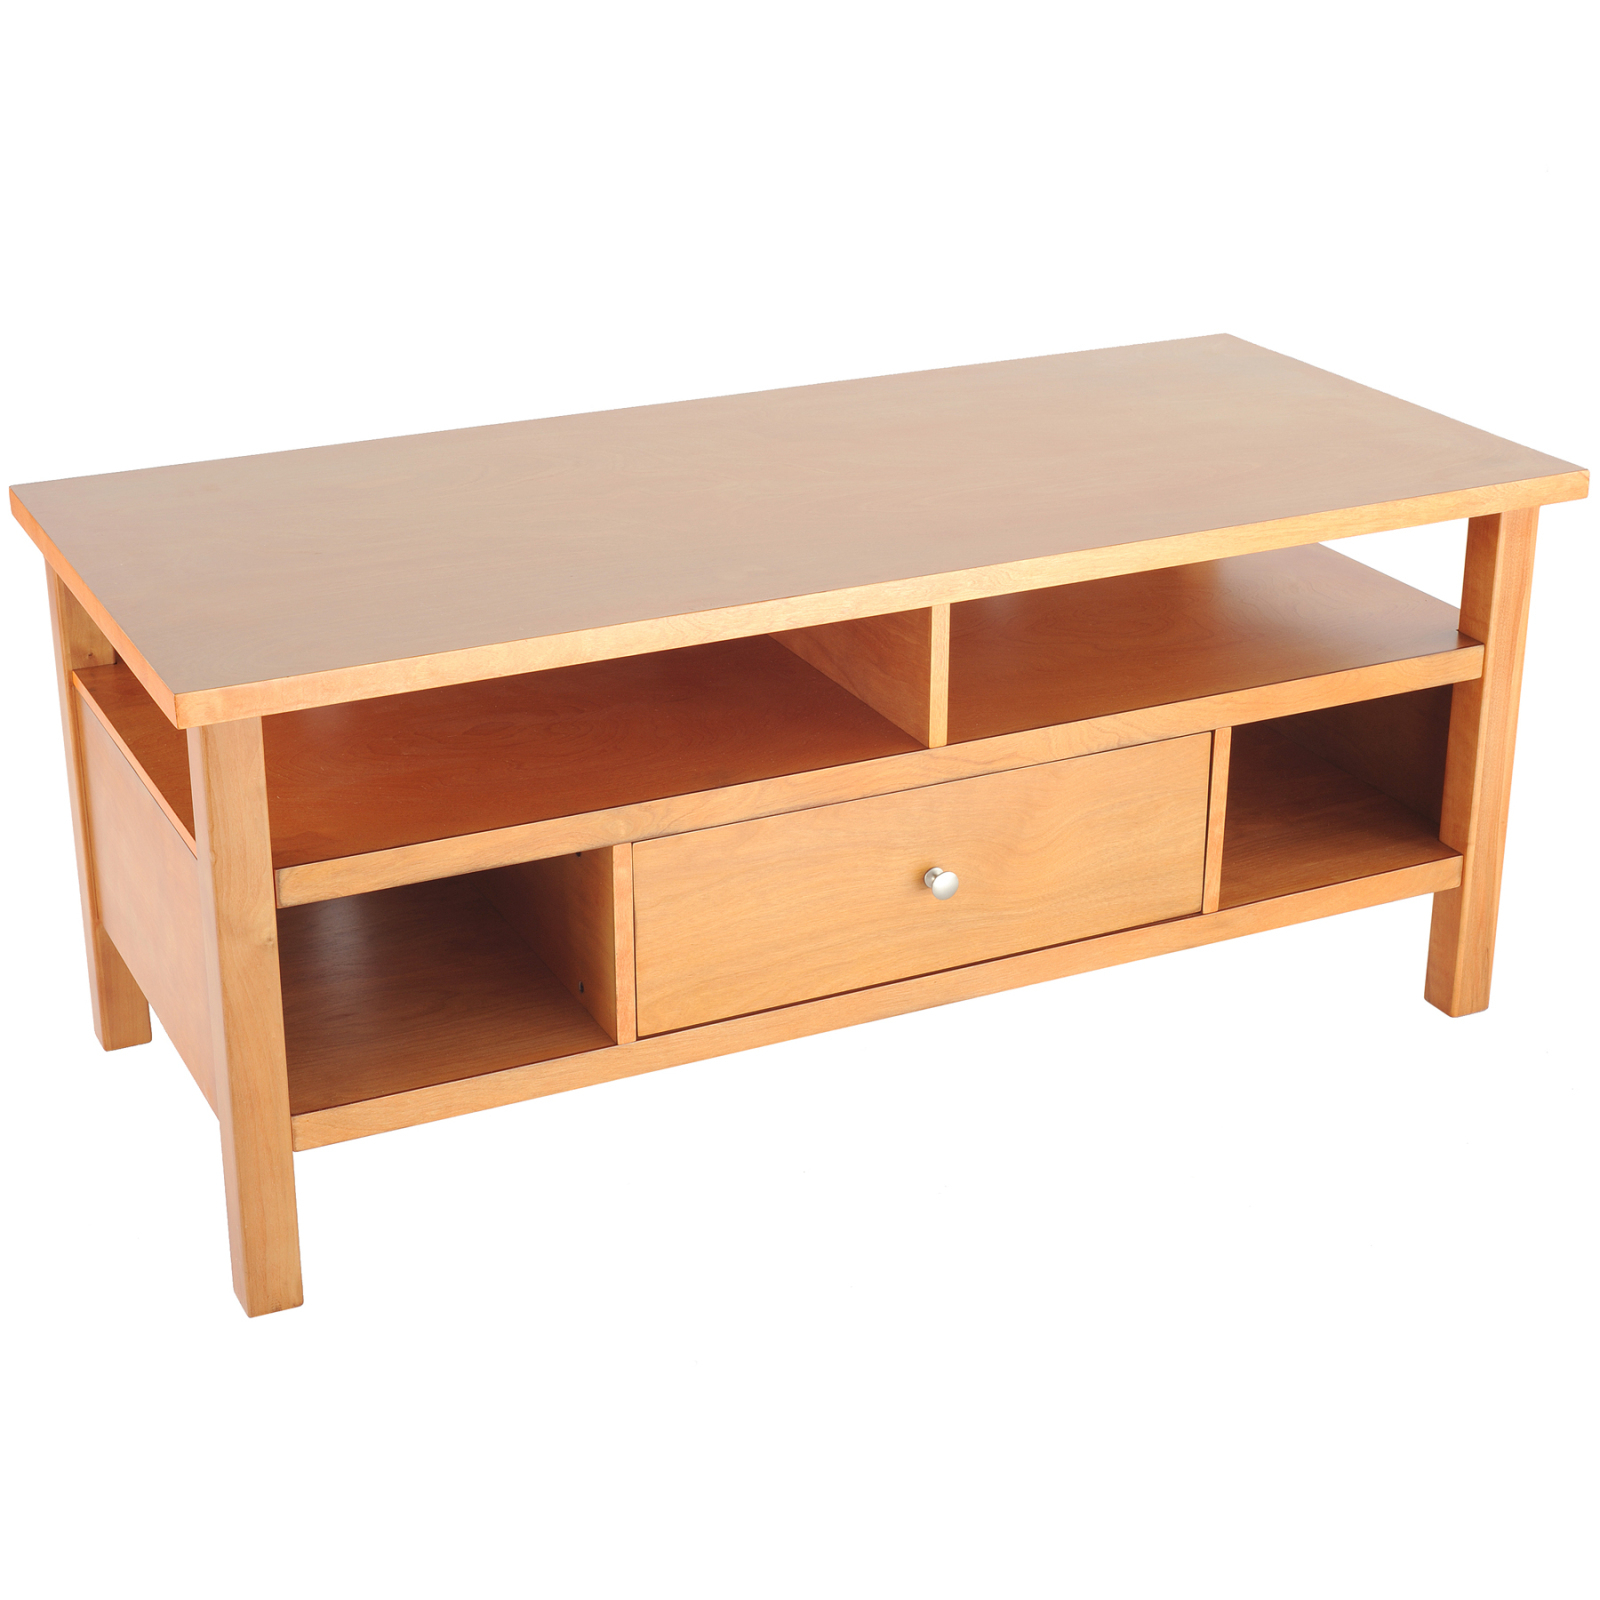 Best And Newest Maple Tv Stands For Flat Screens Pertaining To Flat Screen/tube Tv Stand With Drawer – Honey Maple Distributor (Gallery 1 of 20)